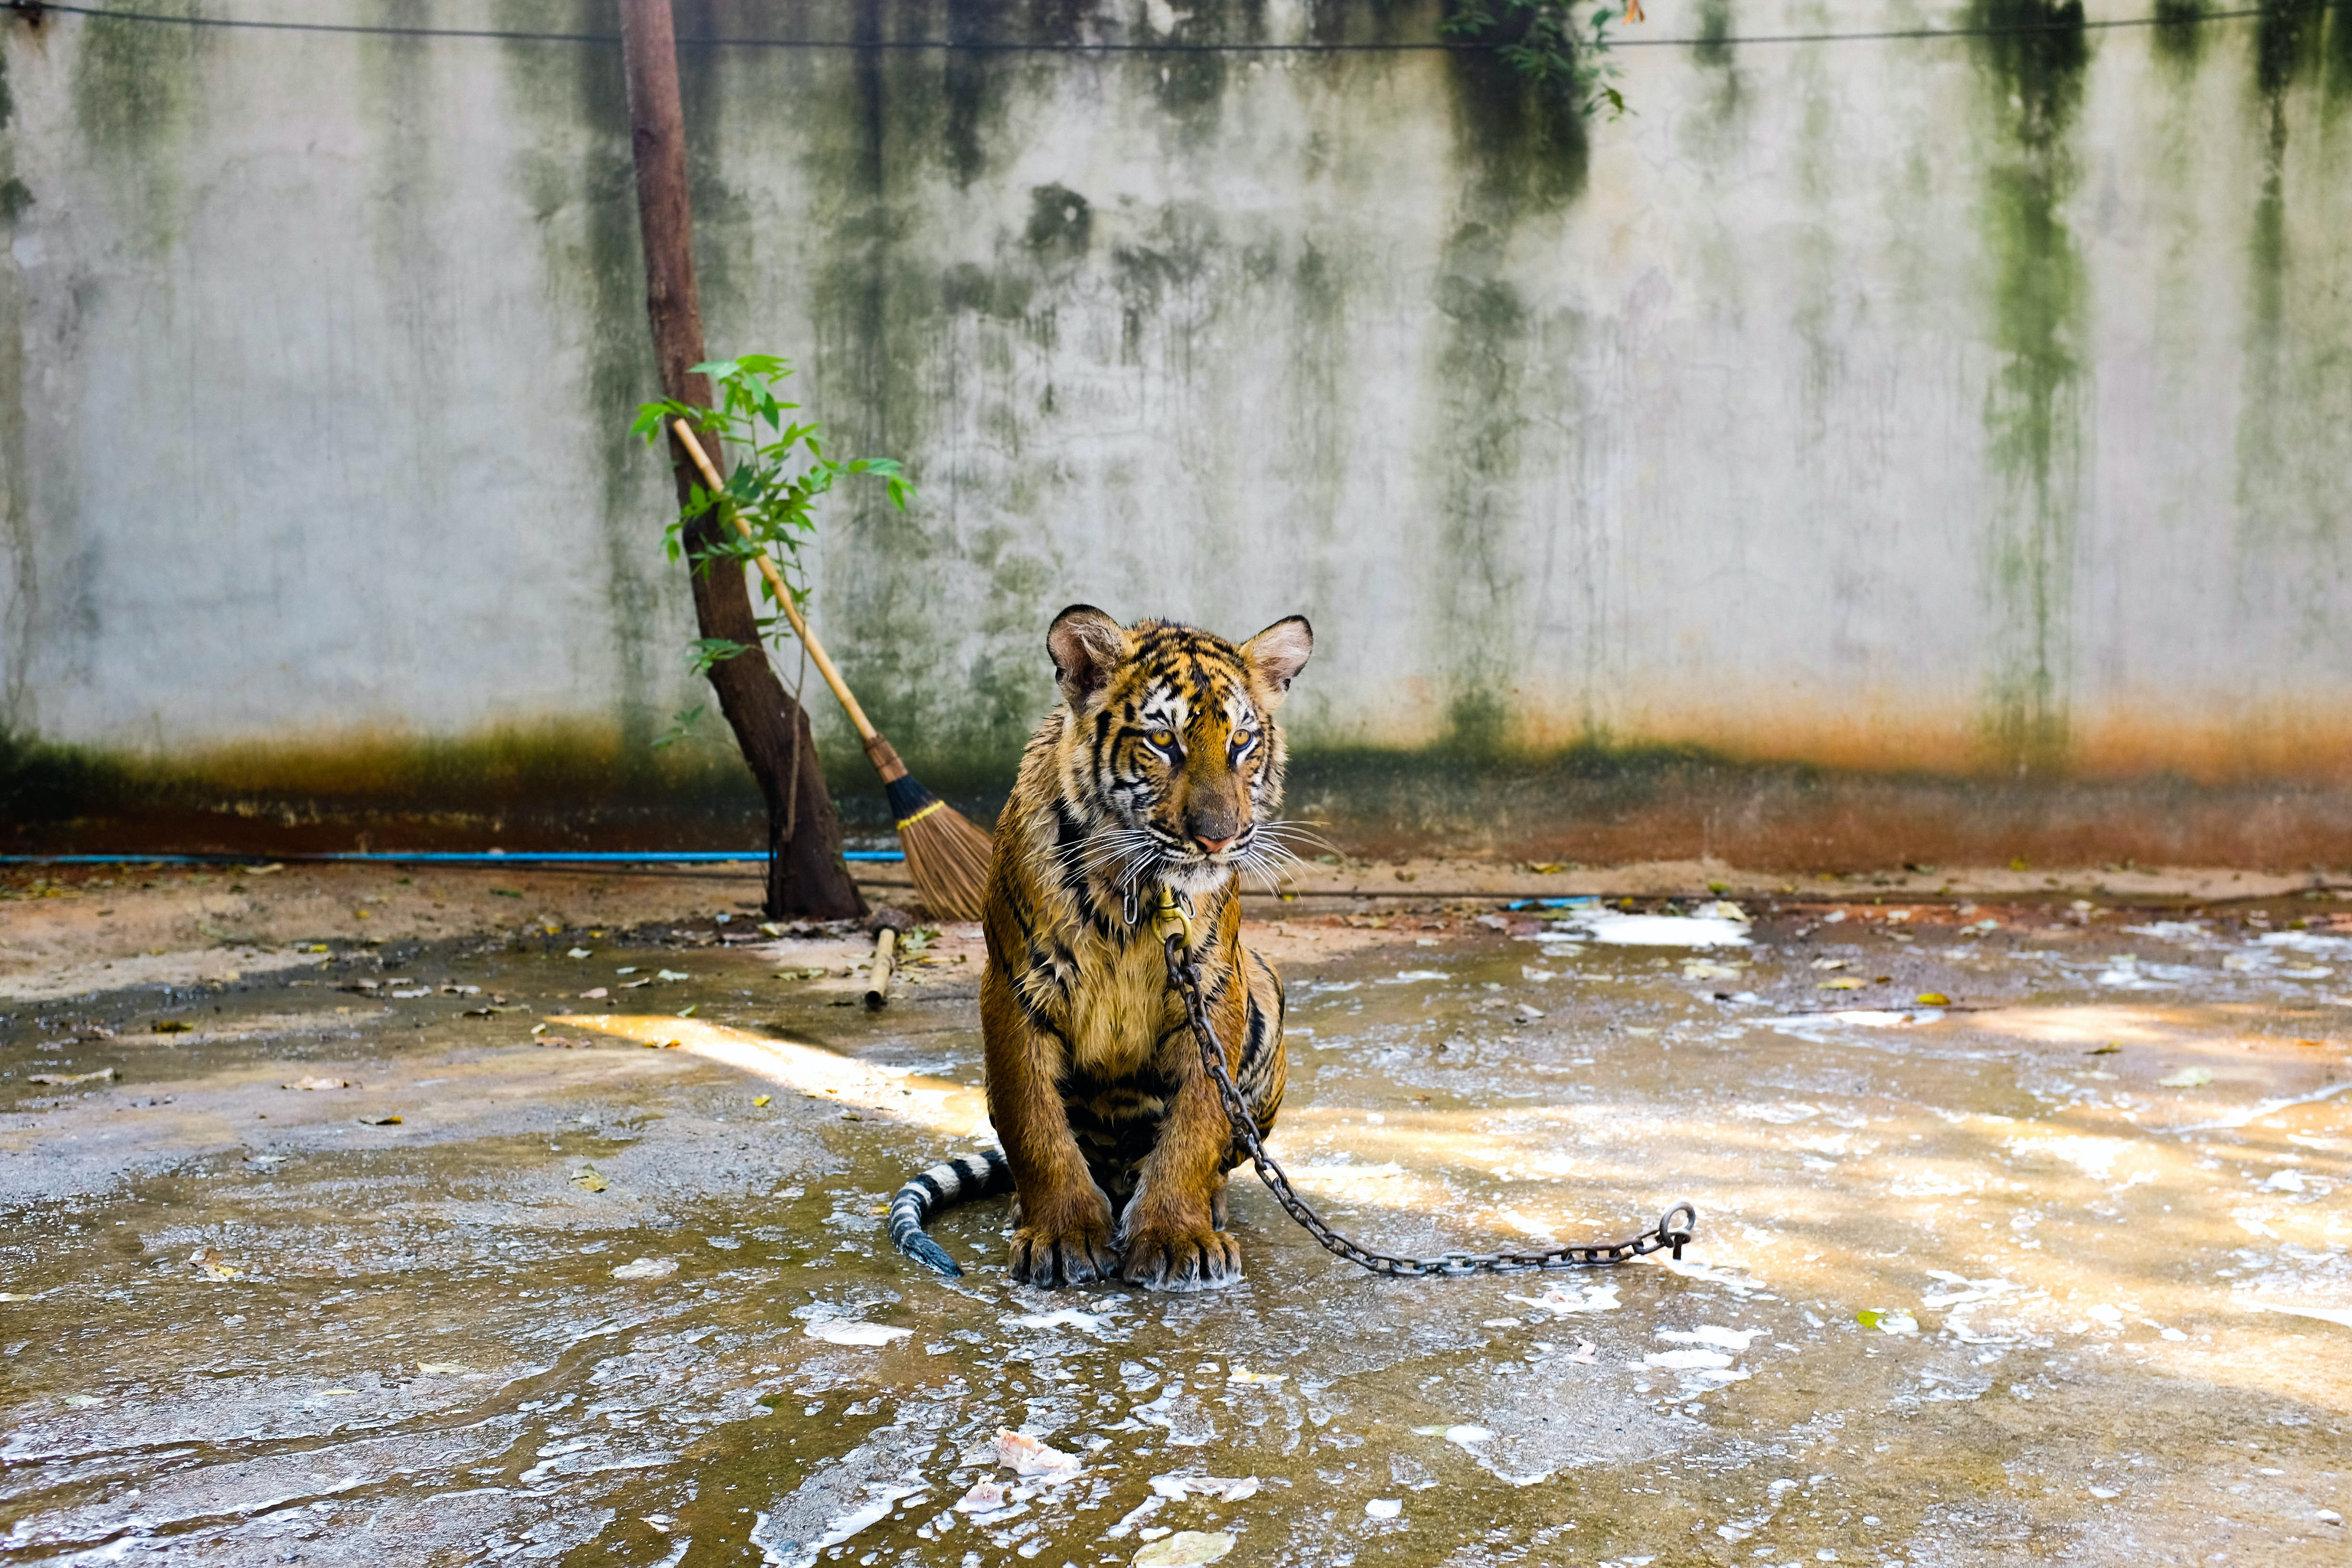 Bengal tiger inside area with water